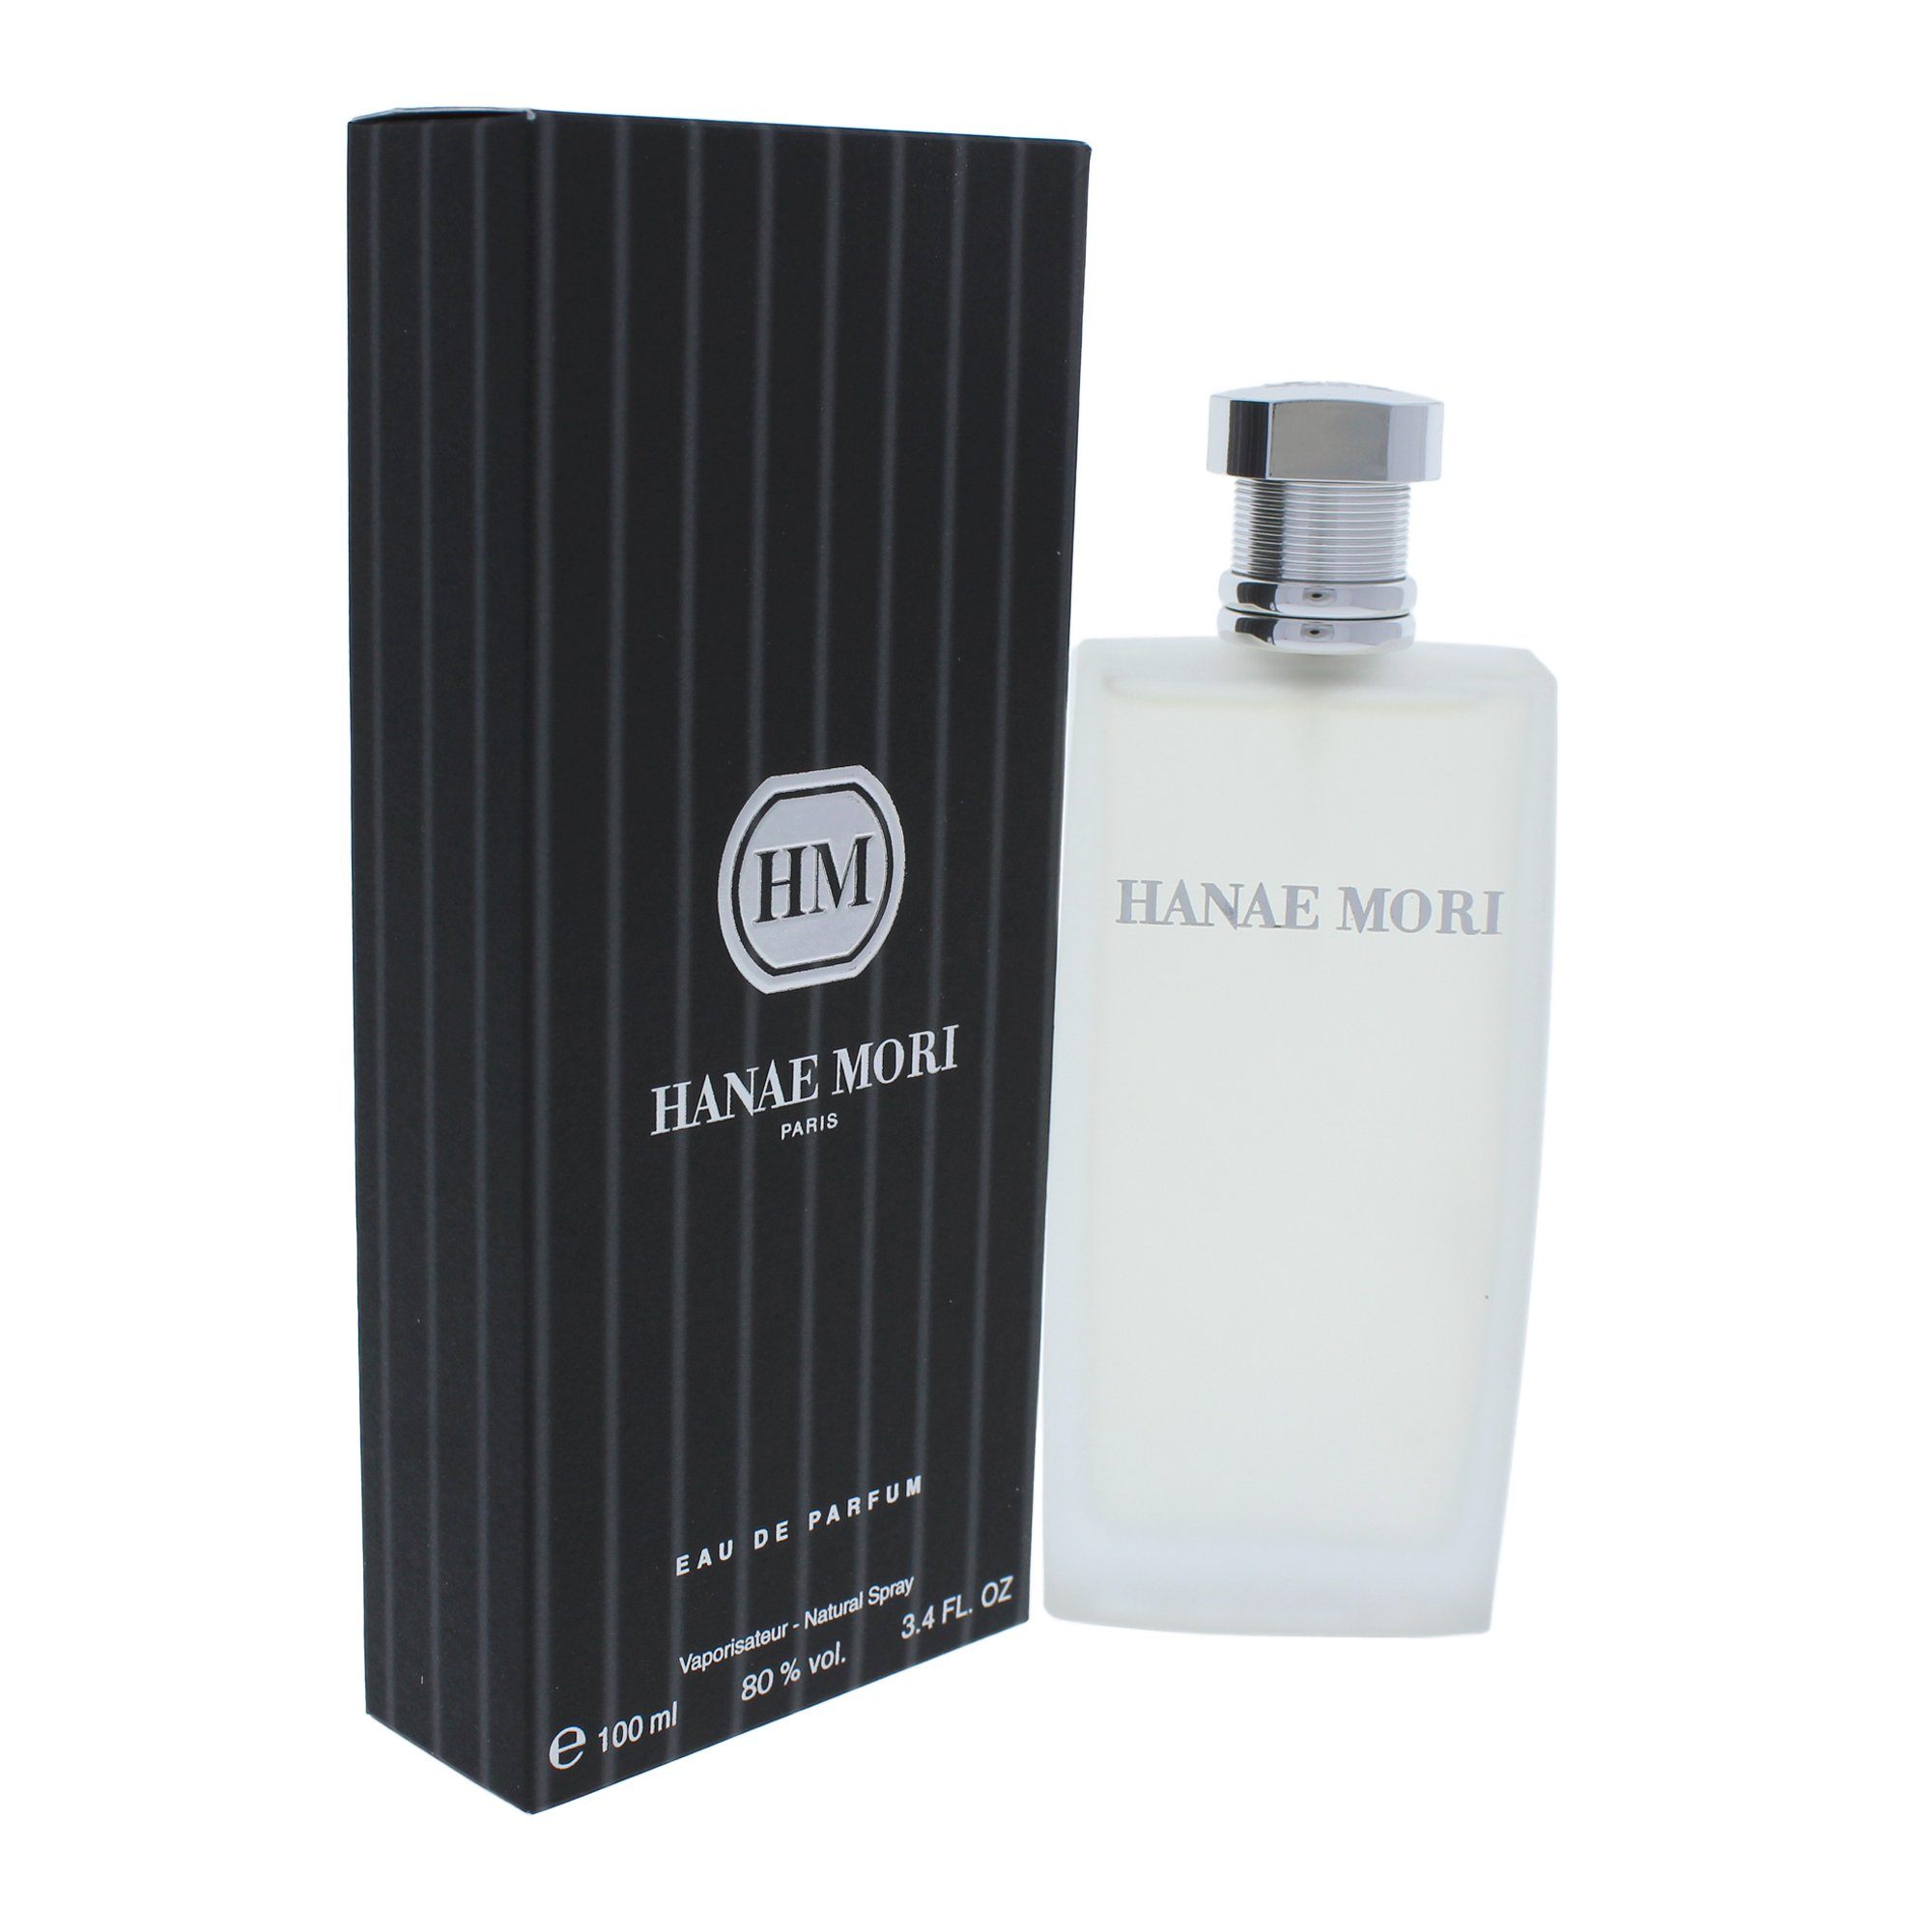 HM by Hanae Mori   Eau de Parfum Spray   Fragrance for Men   Citrusy and Woodsy Scent is Powerful, Pure, and Inviting   100 mL / 3.4 fl oz